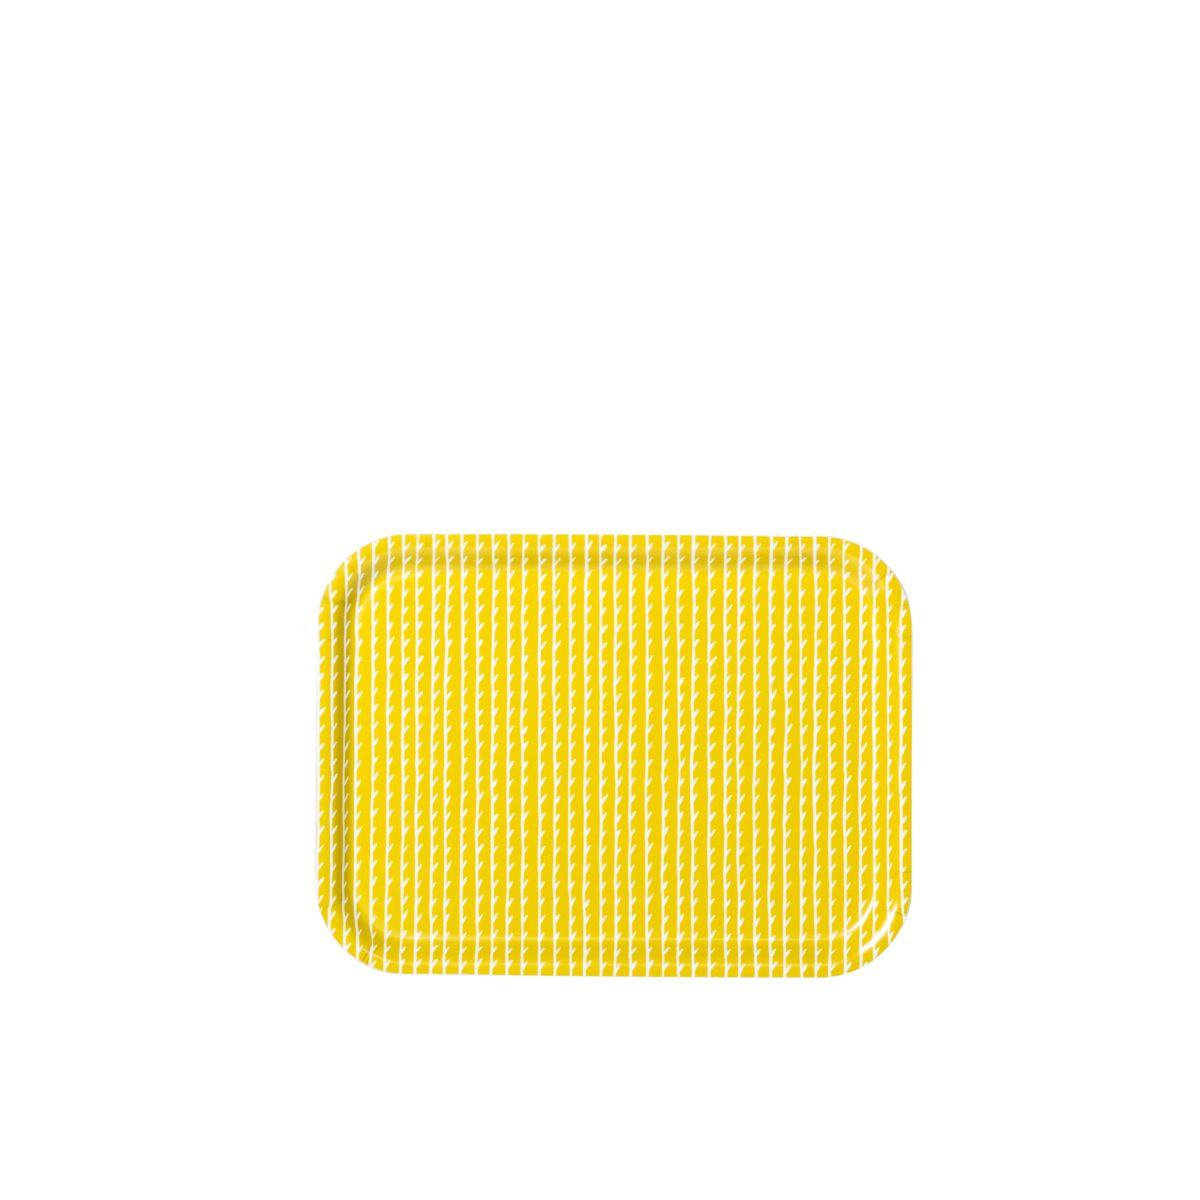 Rivi-Tray-Yellow-White-Small